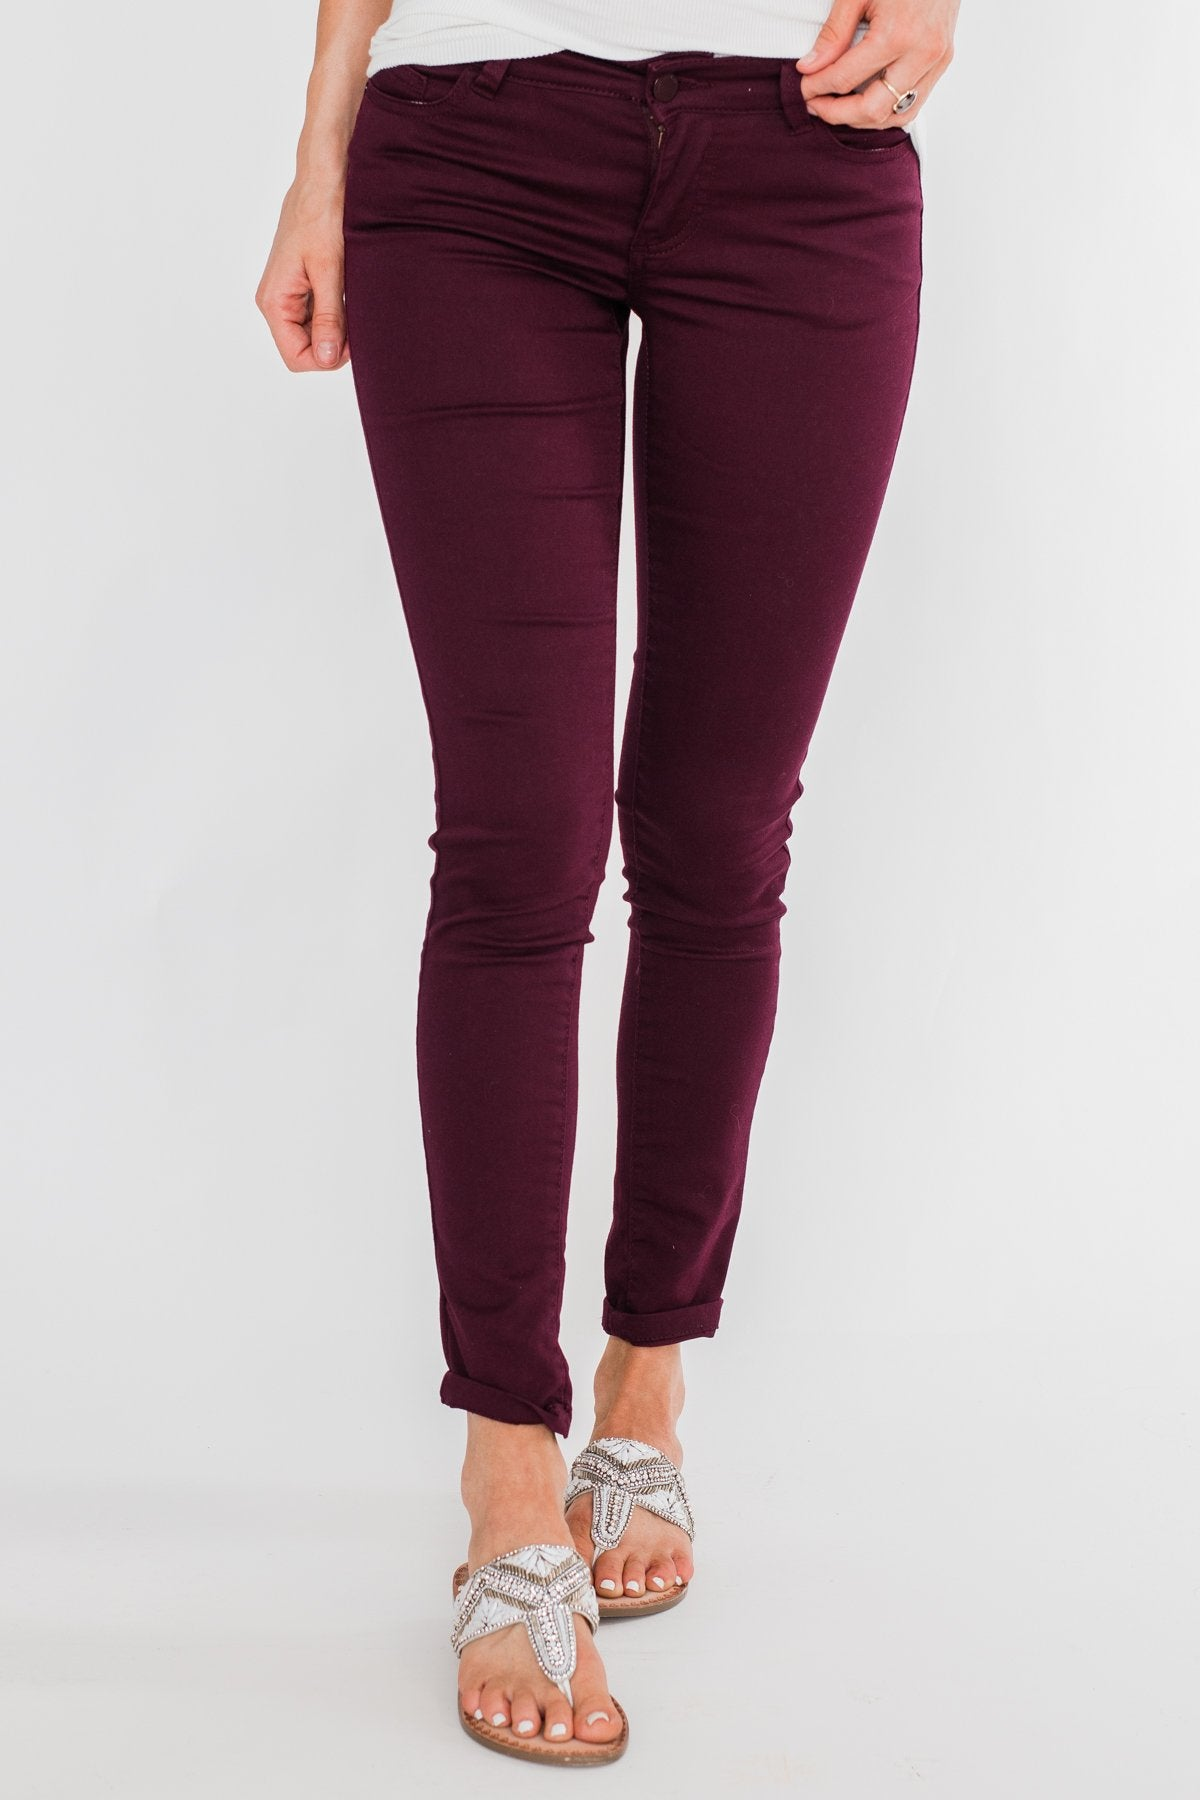 Kan Can Skinny Jeans- Black Side Ankle Zipper